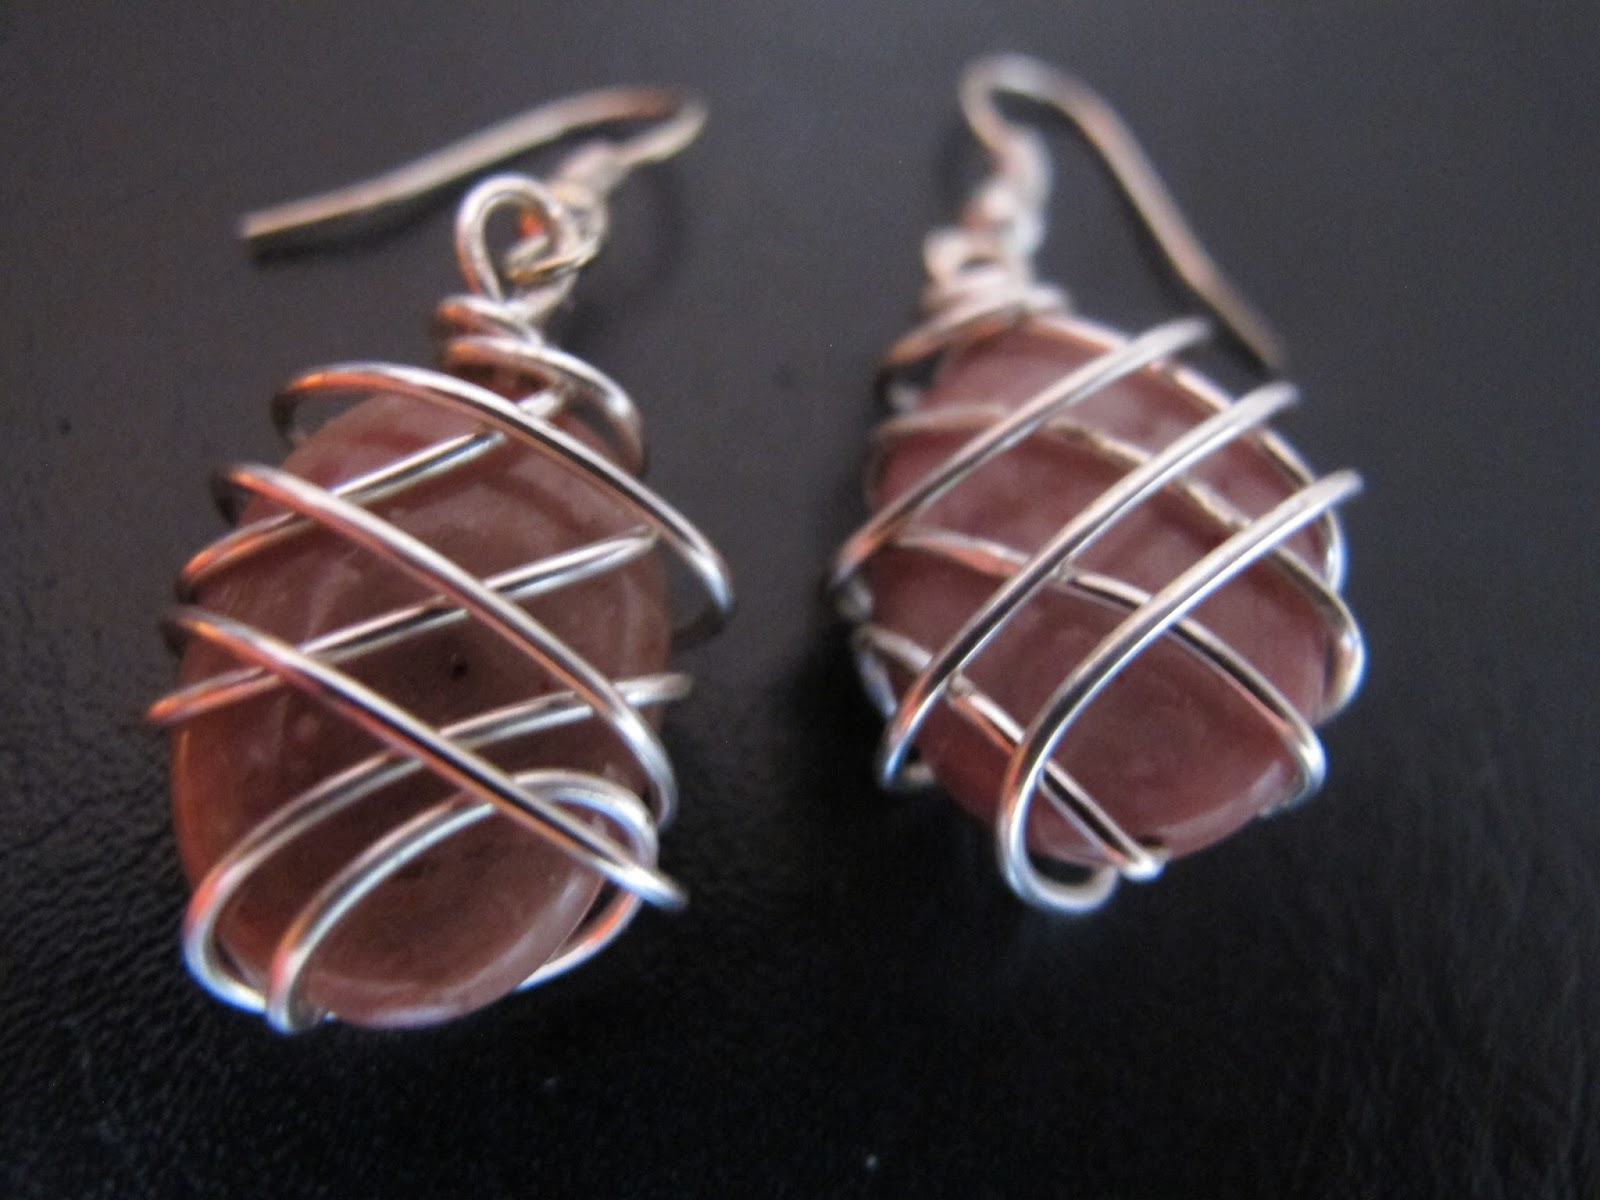 wire jewelry projects Learn to make your first diy jewelry projects with beads, wire, and sheet metal in this introductory jewelry class we'll cover the basic techniques, tools, and materials you'll need, and walk you through four easy projects, step-by-step.